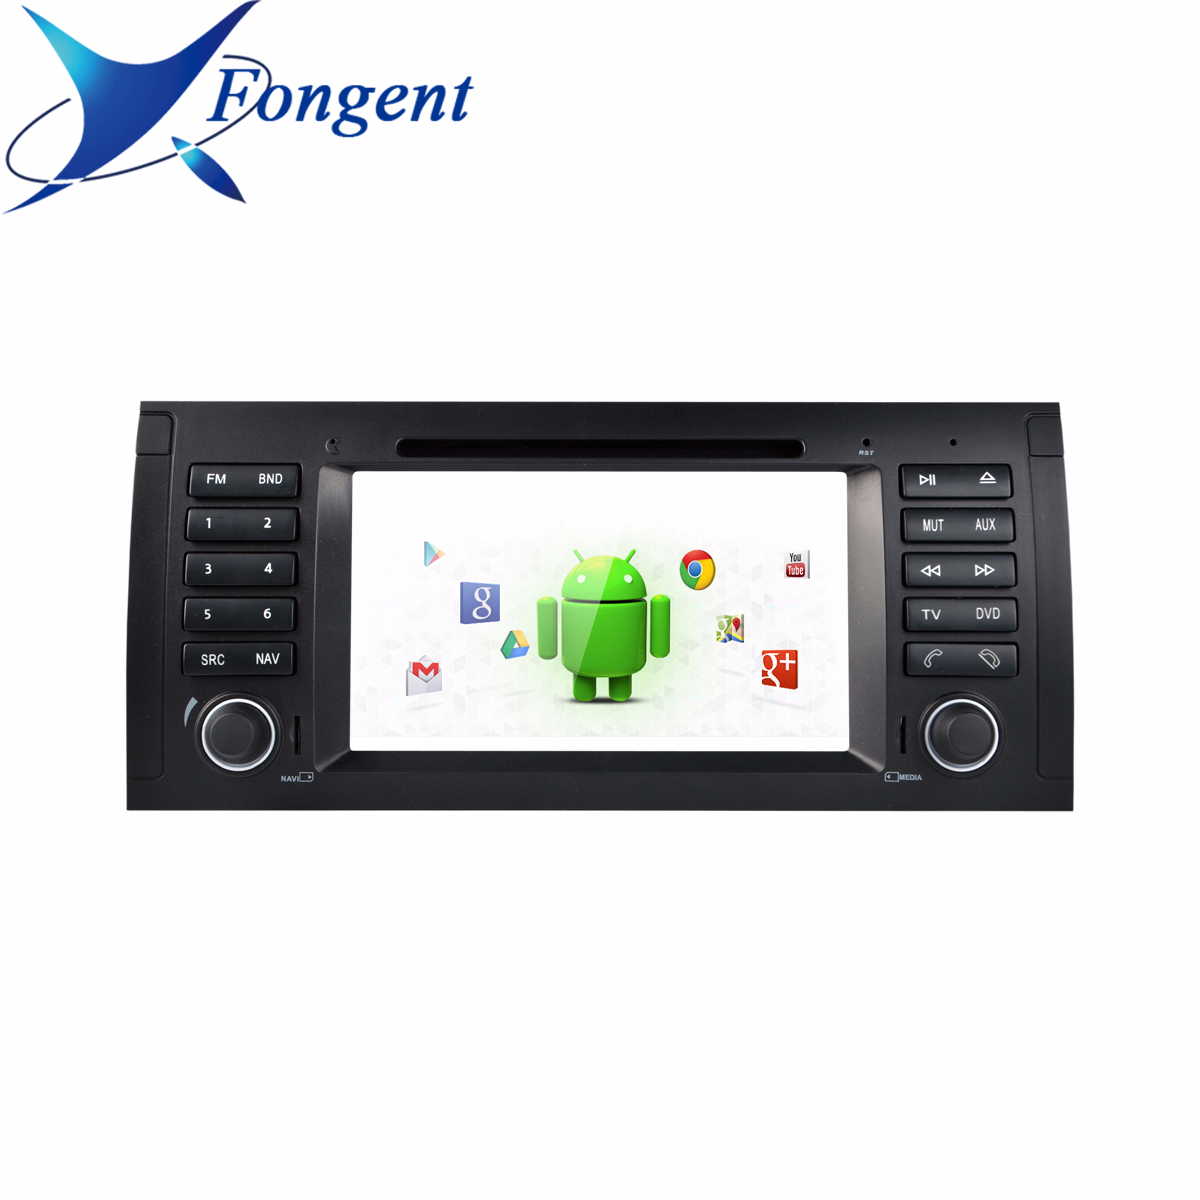 For Bmw X5 E53 E39 E38 M5 5 7 Series Multimedia Radio Gps Navigator Stereo Android Rk339 Px6 Car 1din Dvd Player Carplay Dsp image